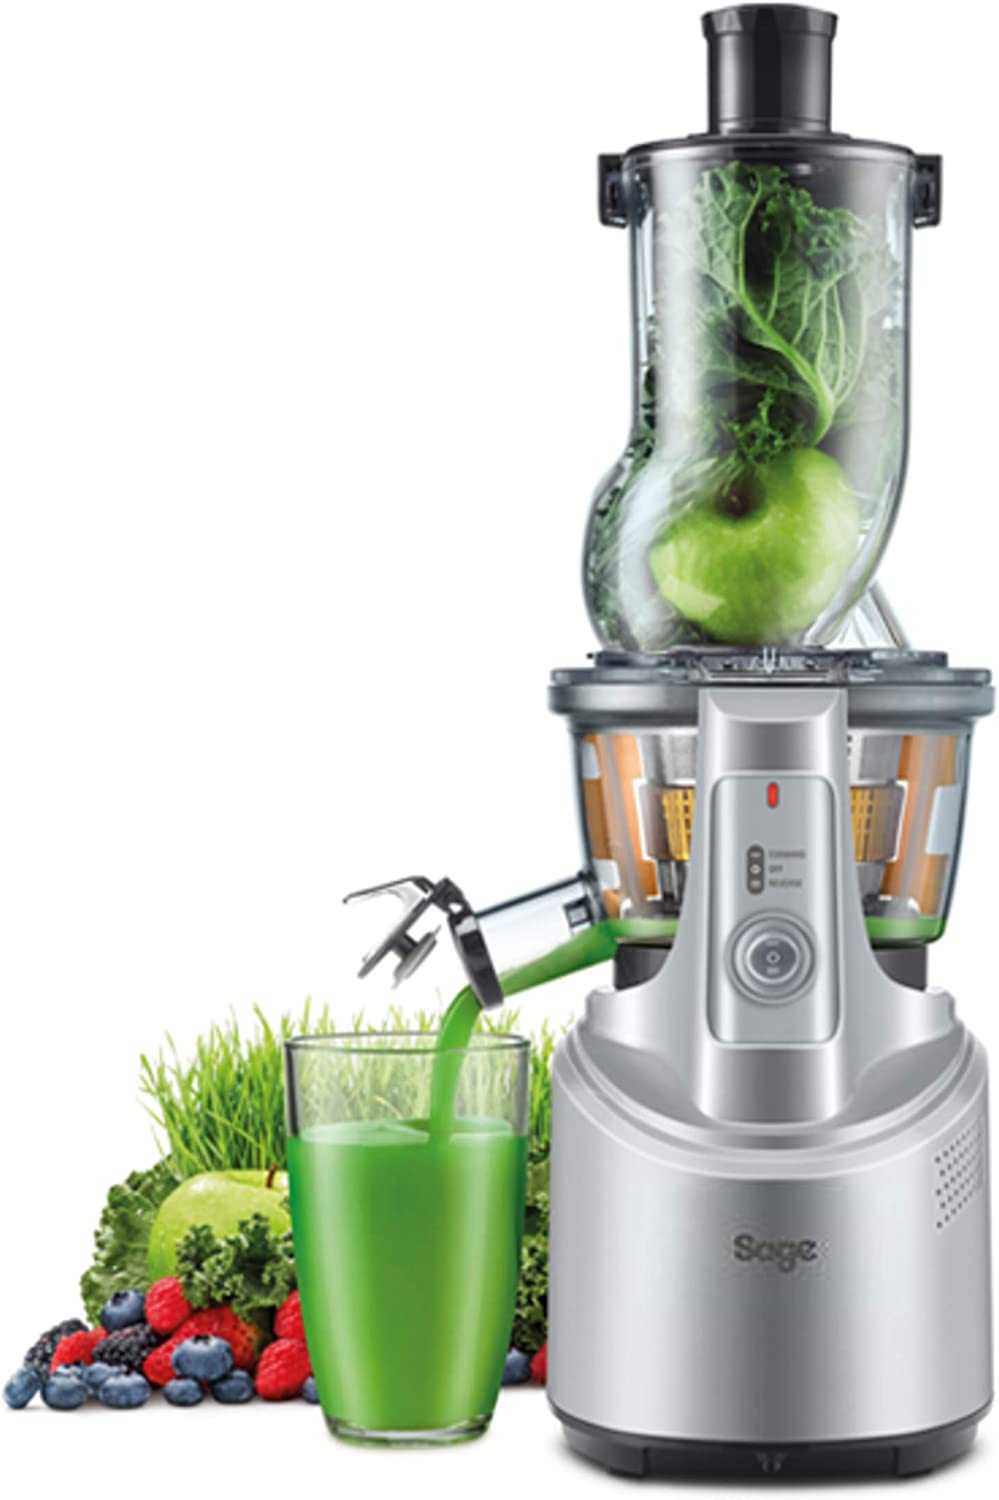 Sage SJS700SIL Big Squeeze Juicer, Stainless Steel